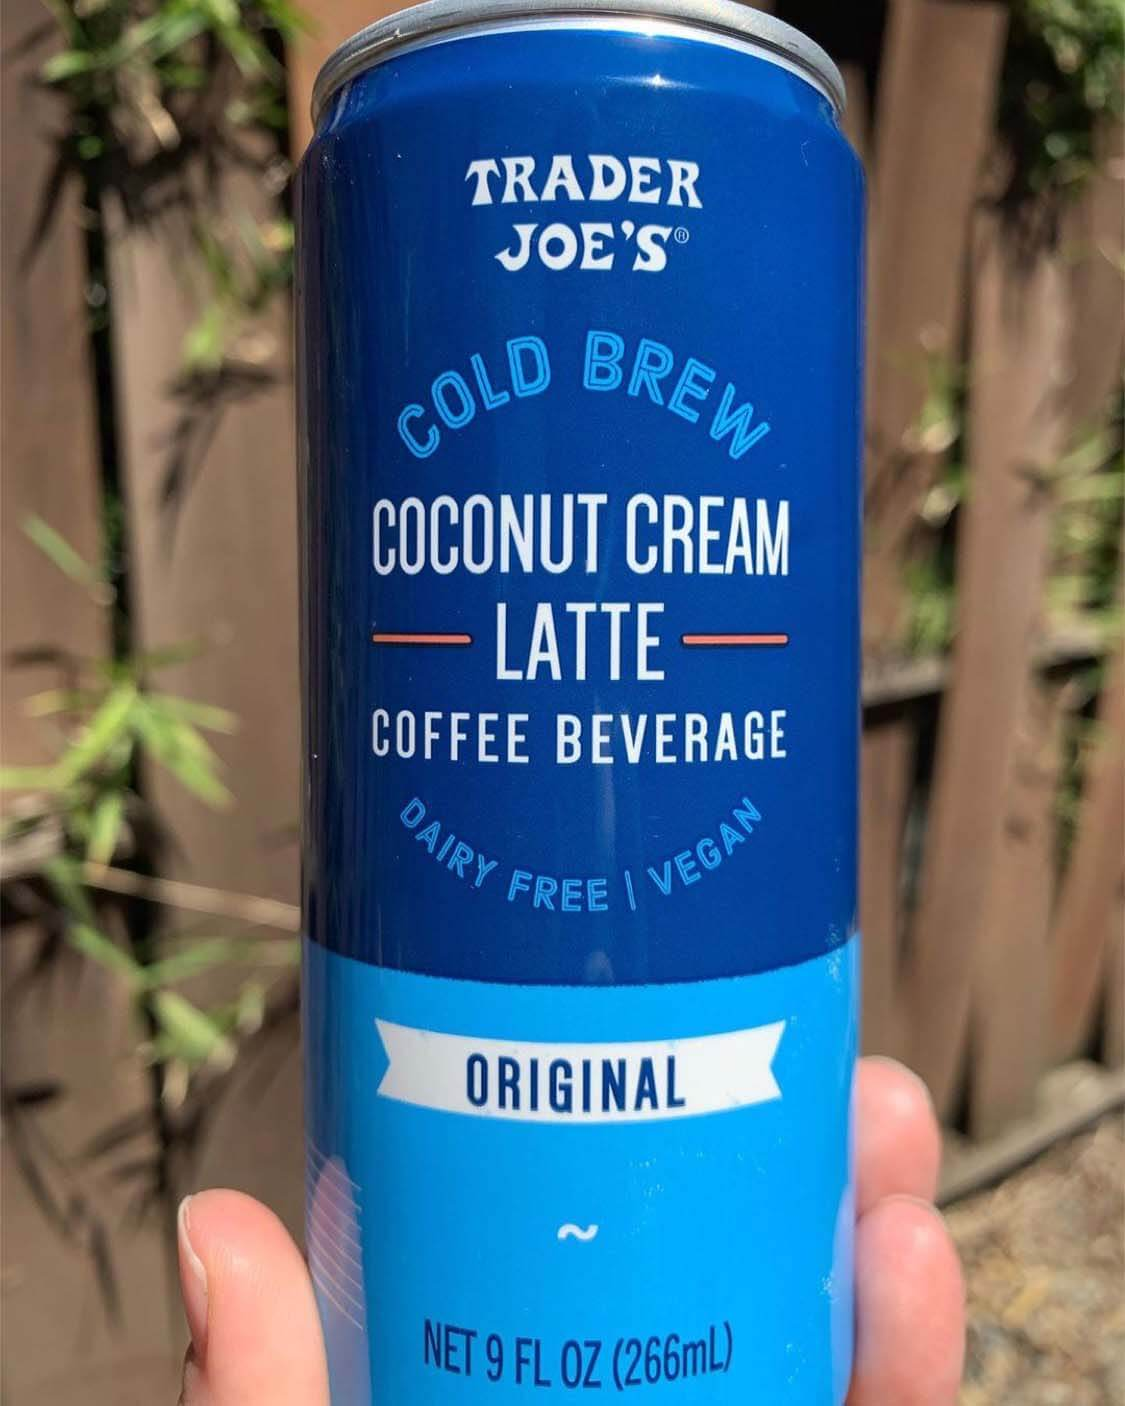 Trader Joe's Coconut Cream Latte